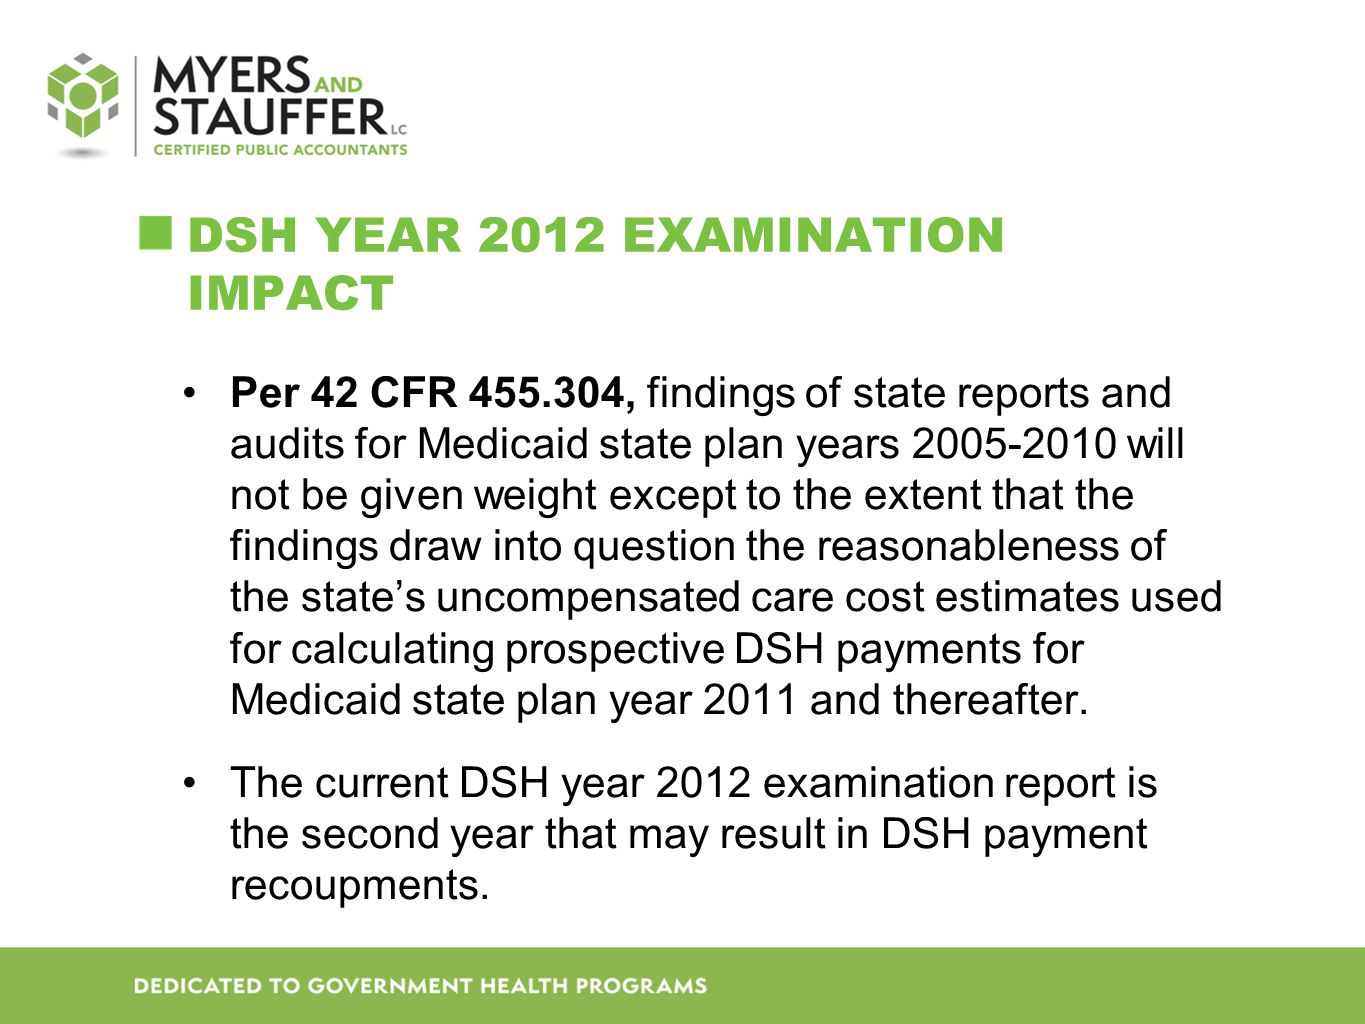 DSH YEAR 2012 EXAMINATION IMPACT Per 42 CFR 455.304, findings of state reports and audits for Medicaid state plan years 2005-2010 will not be given weight except to the extent that the findings draw into question the reasonableness of the state's uncompensated care cost estimates used for calculating prospective DSH payments for Medicaid state plan year 2011 and thereafter.